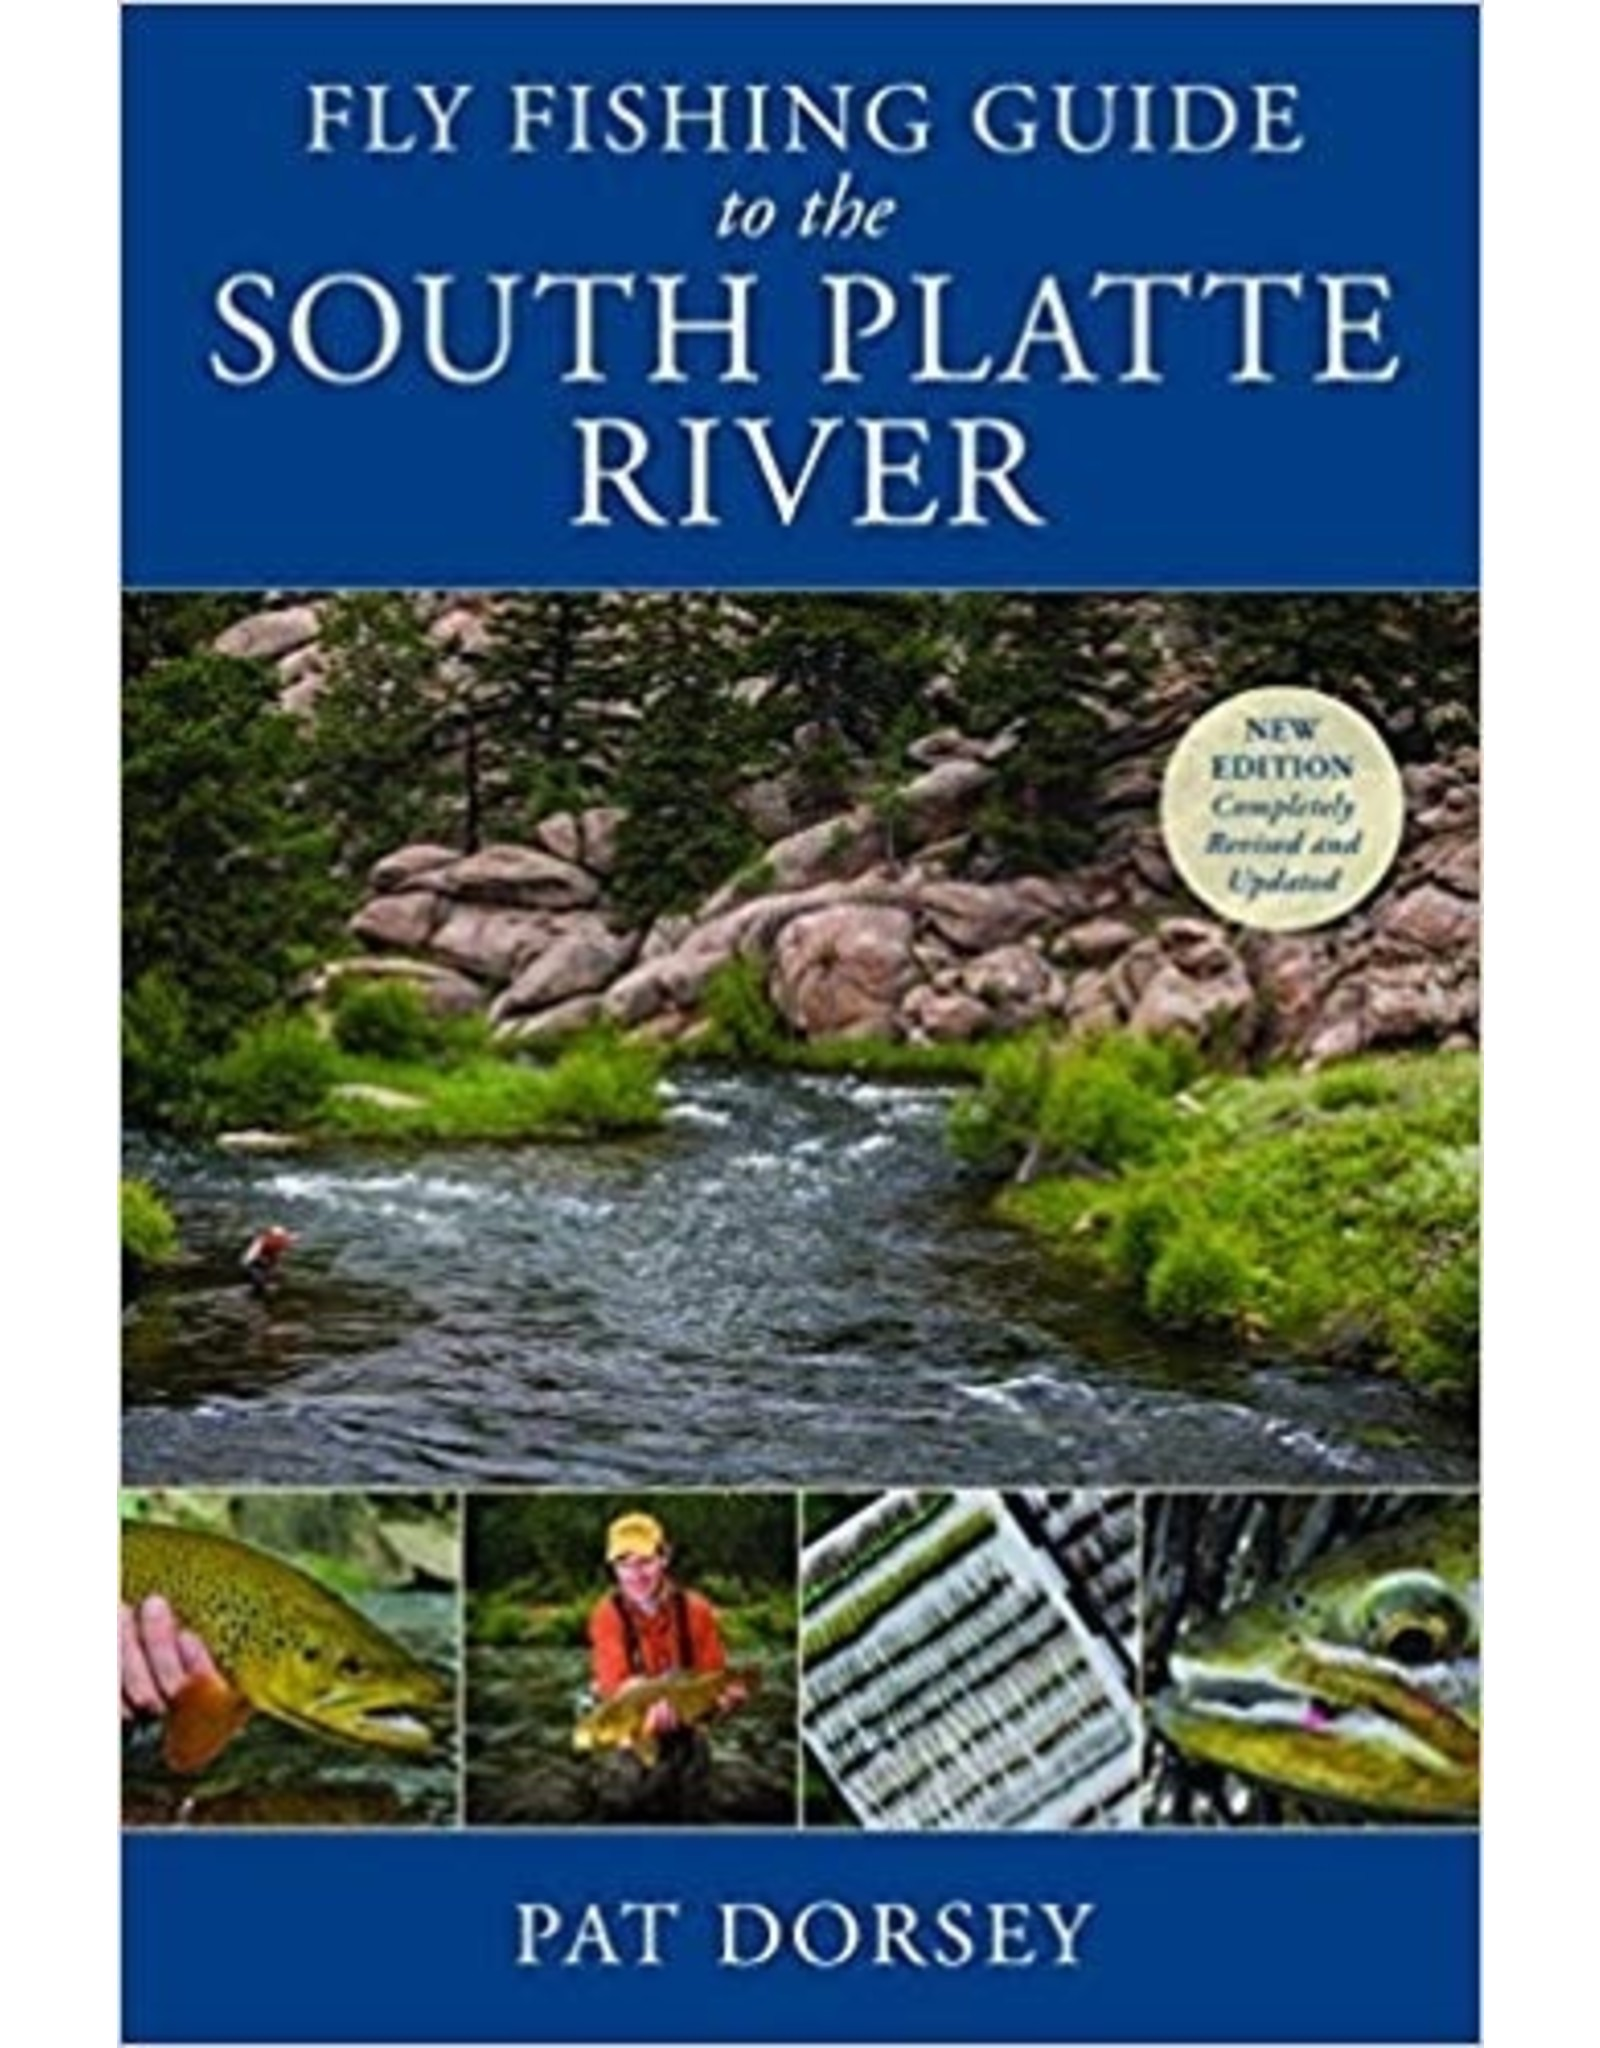 Books Fly Fishing Guide to the South Platte River by Pat Dorsey